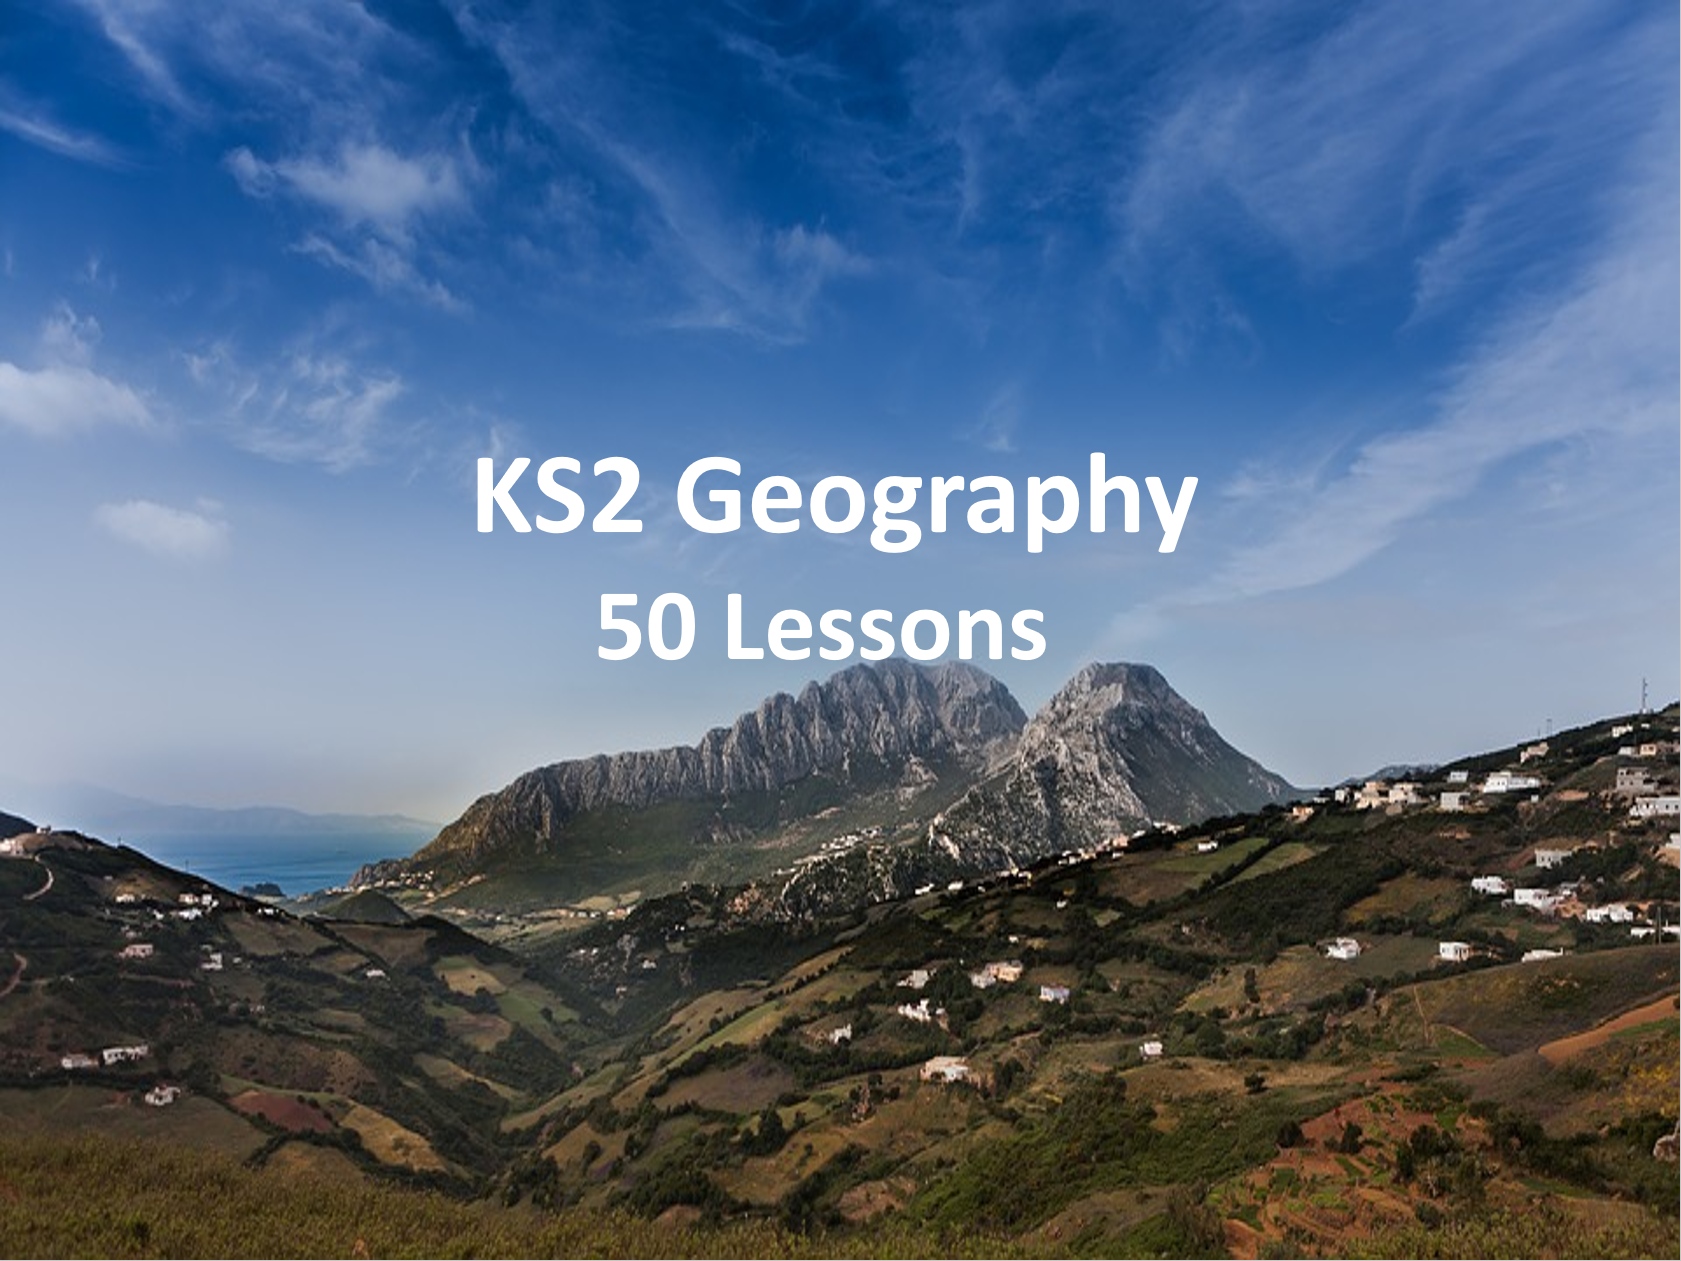 KS2 Geography